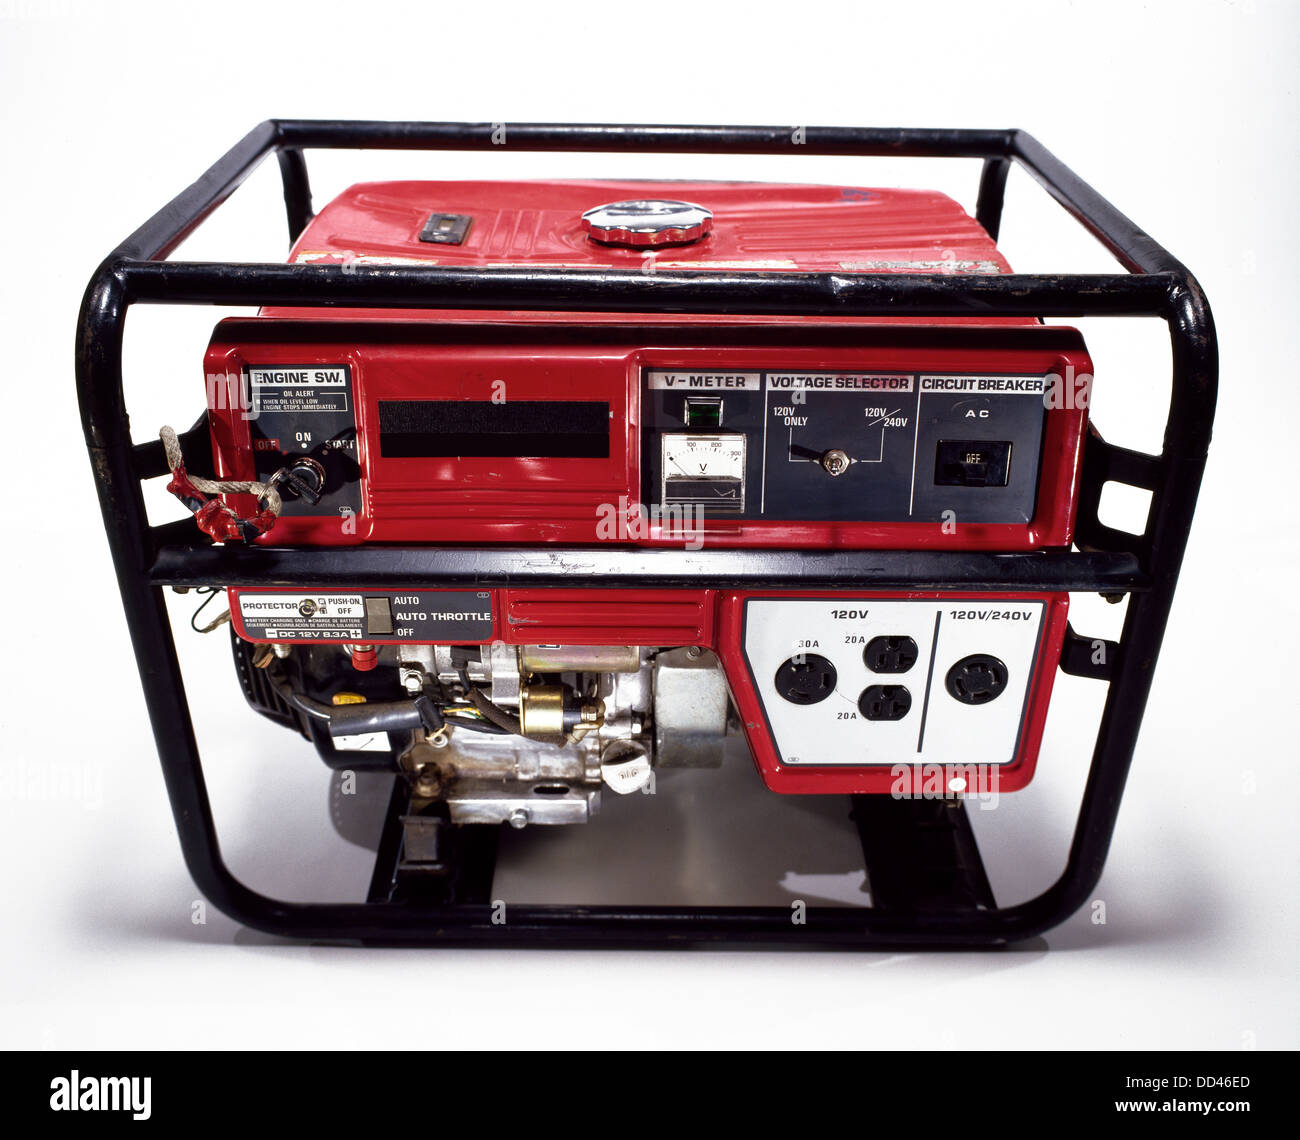 A red portable gas powered electric generator on a white background. - Stock Image